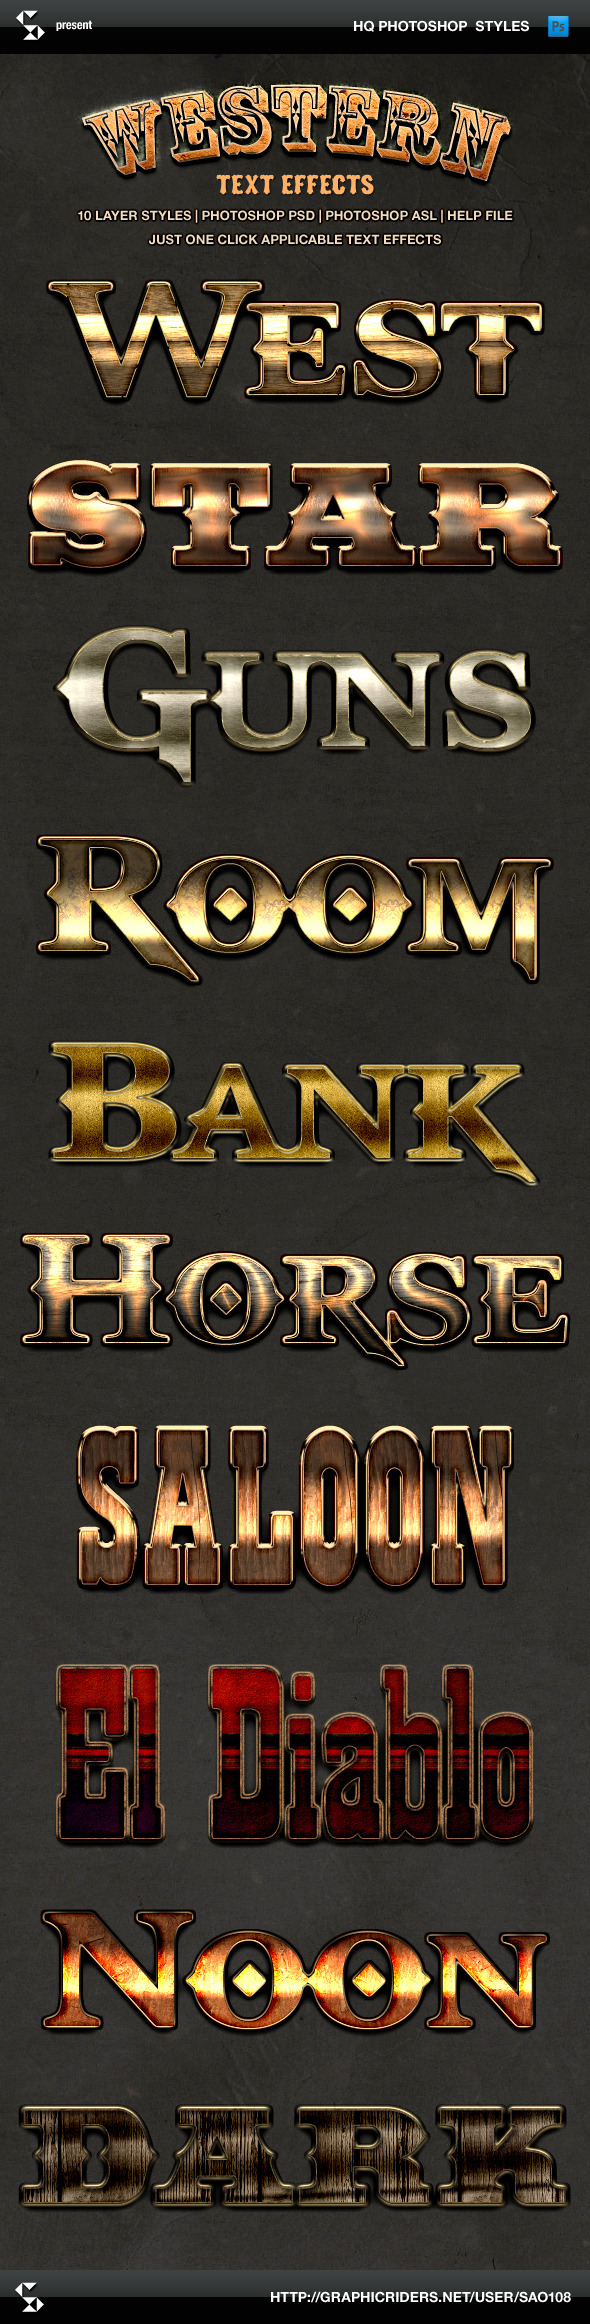 Wild West Style Text Effects - Western Styles - Text Effects Styles